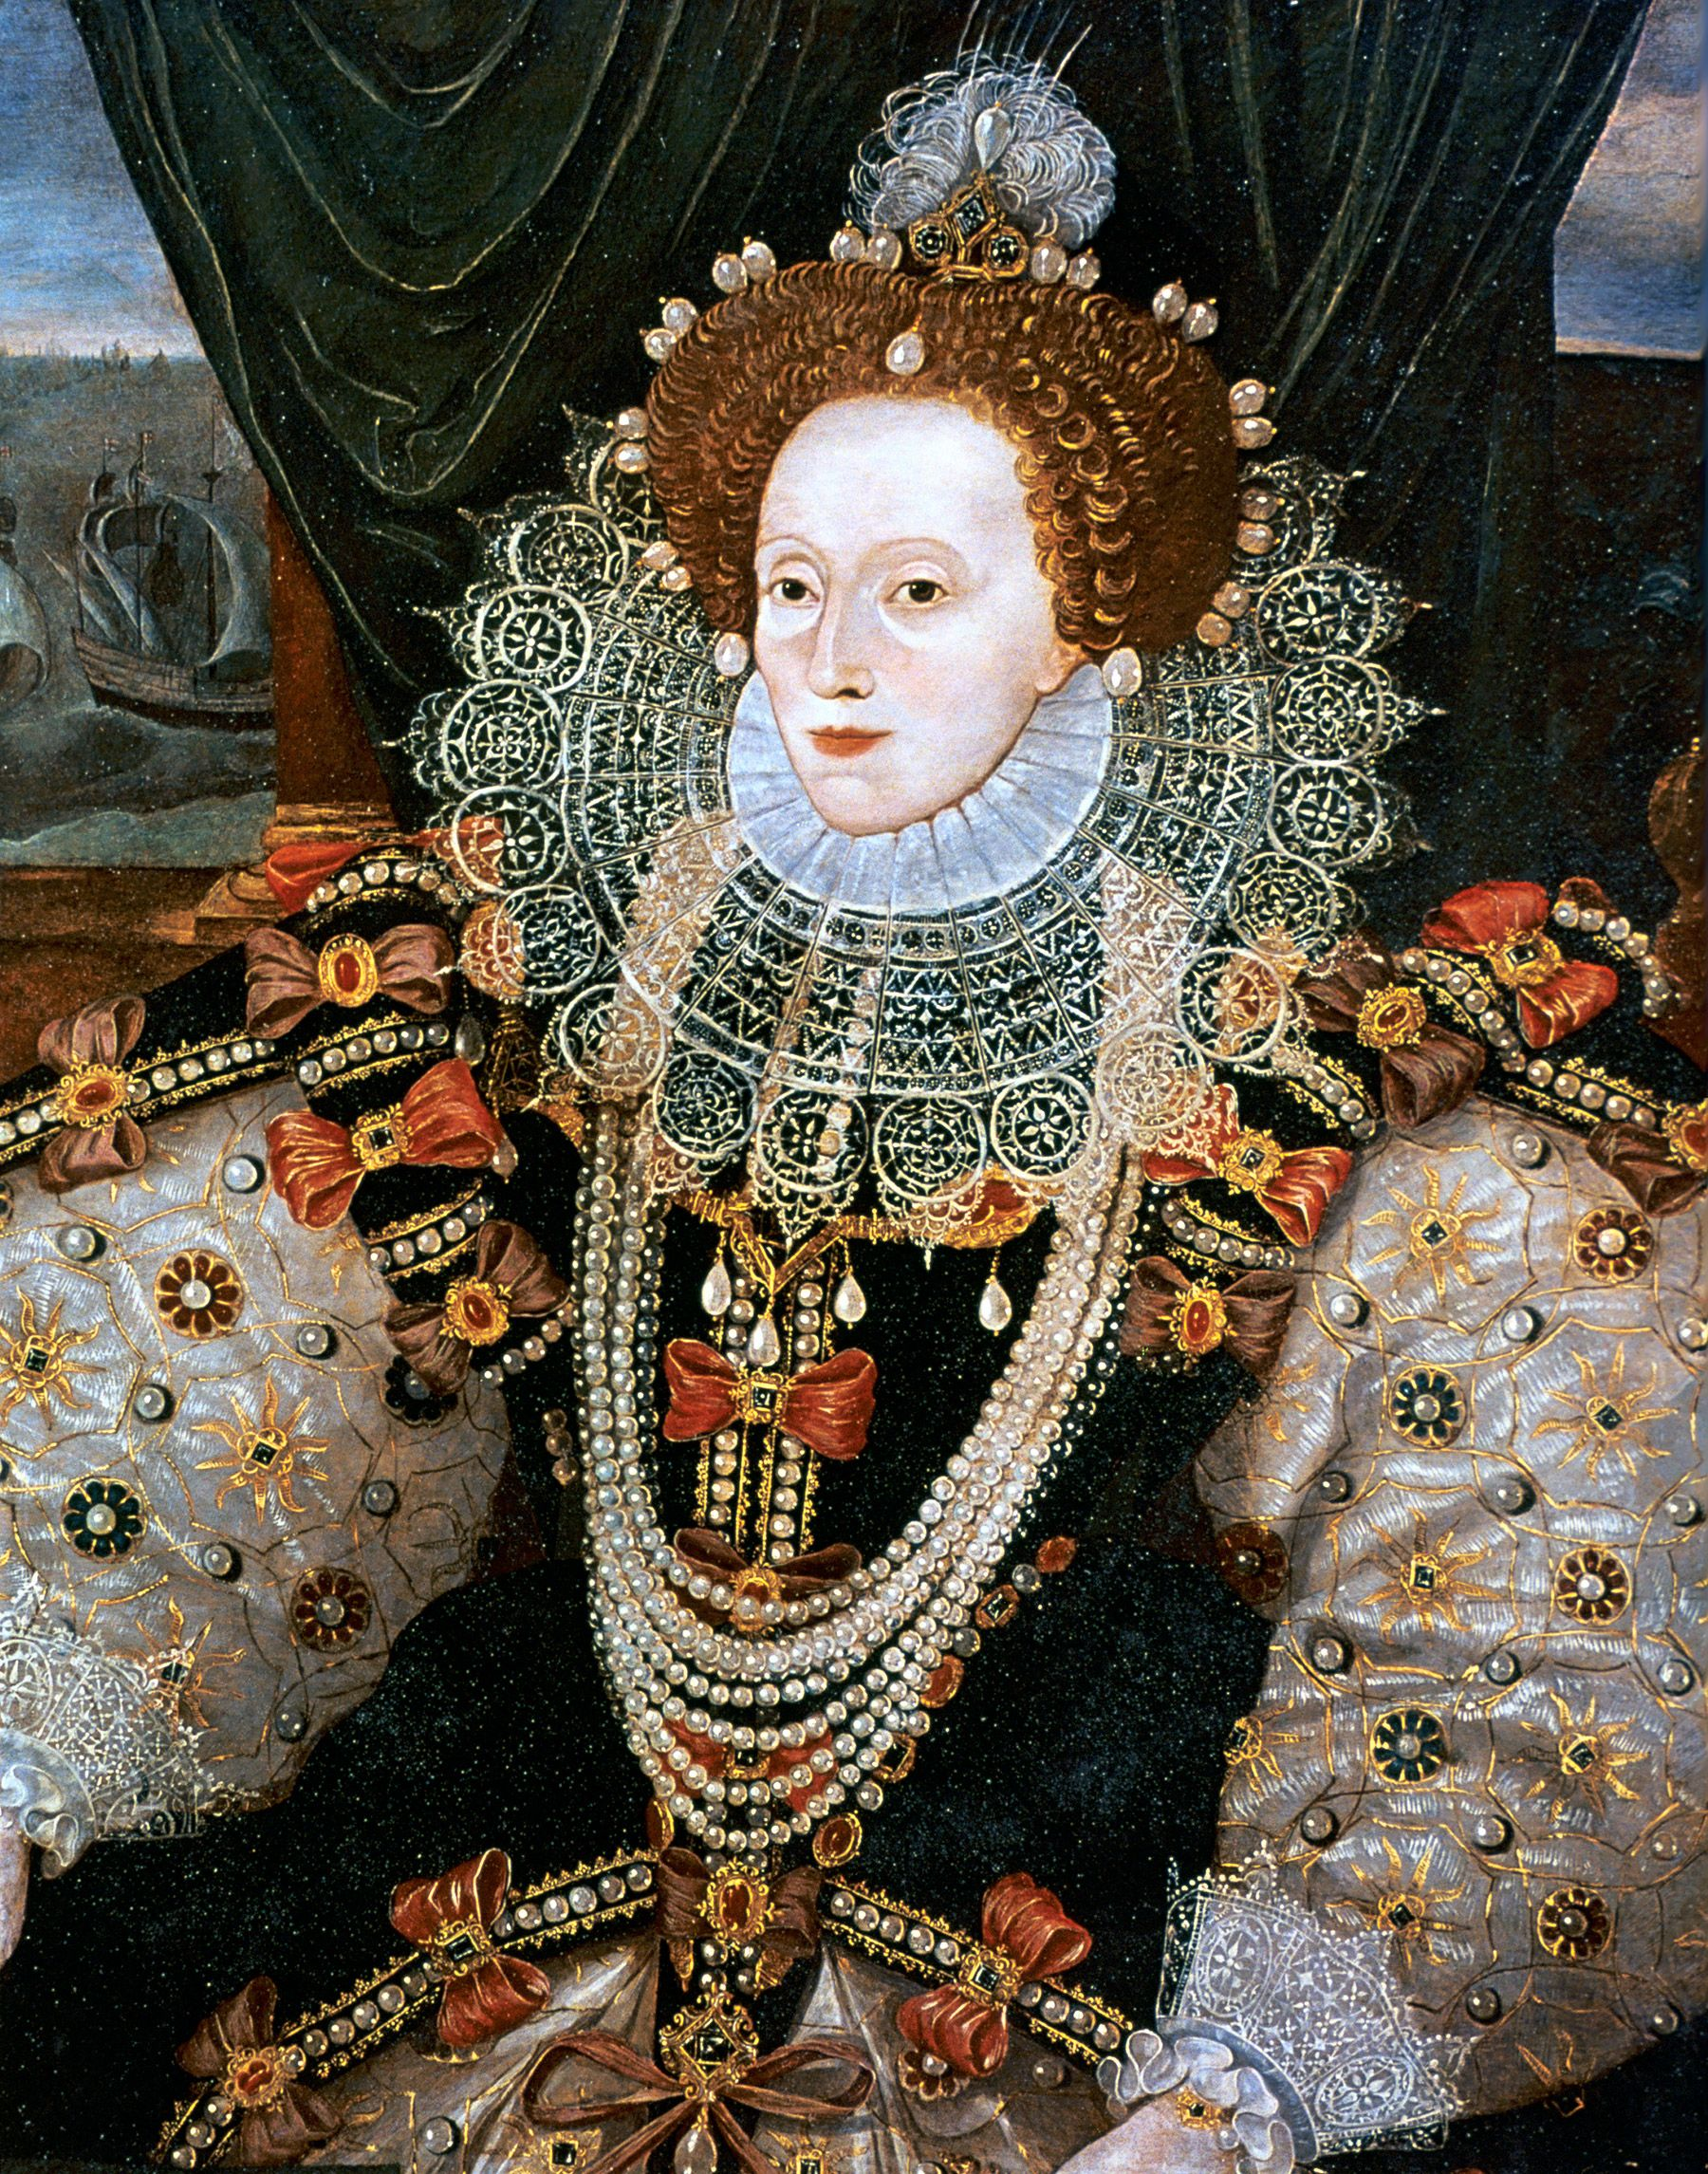 The Crushing Reason Queen Elizabeth I Caked Her Face with